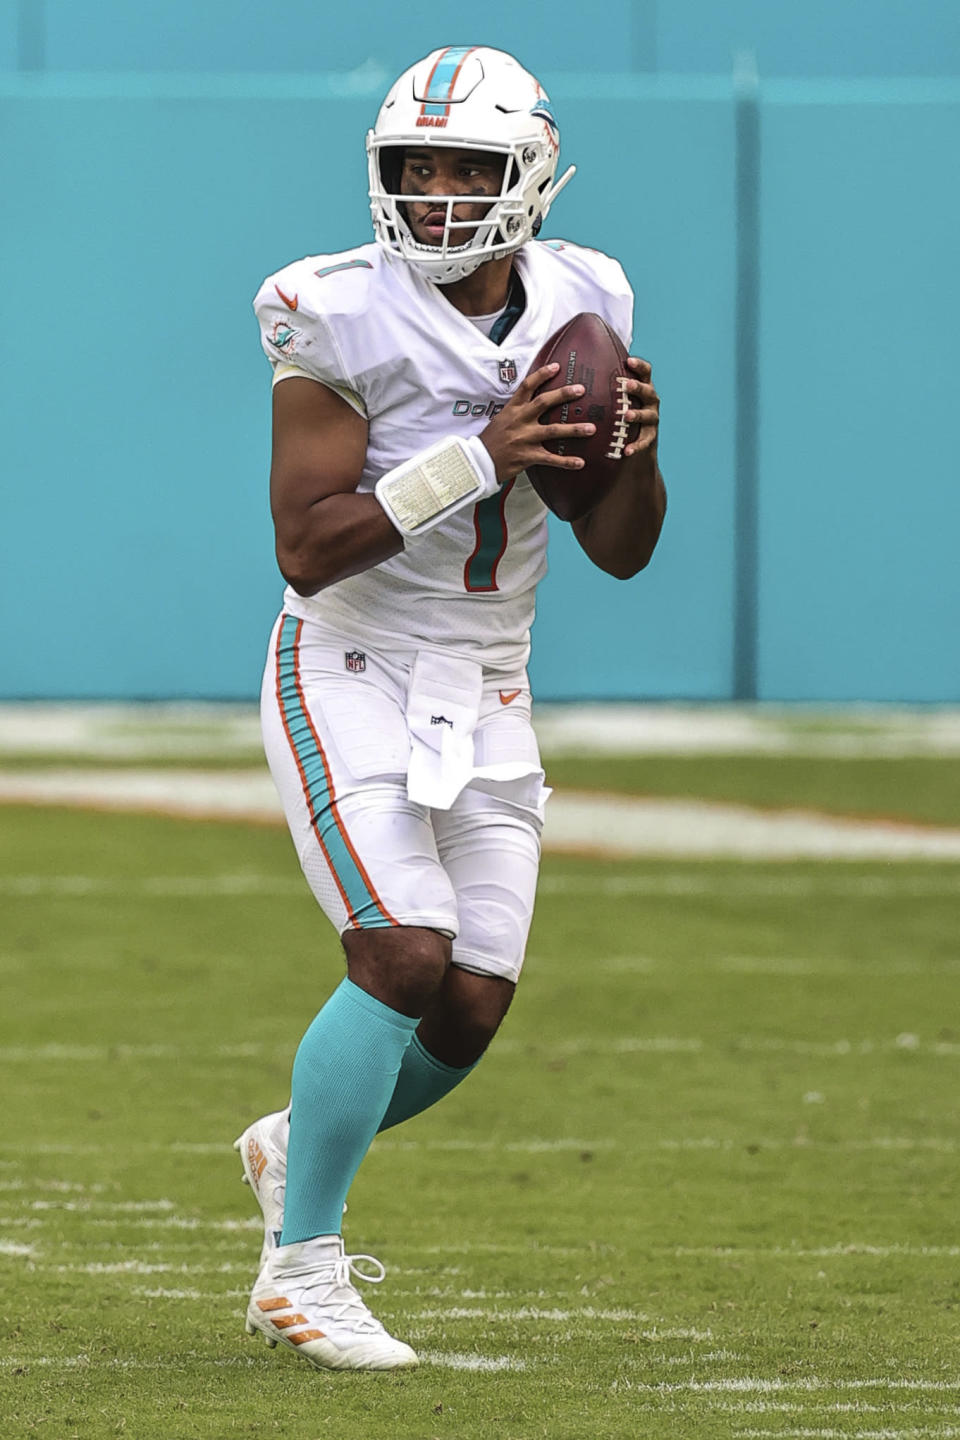 Miami Dolphins quarterback Tua Tagovailoa (1) looks downfield for a receiver in an NFL game against the Los Angeles Rams, Sunday, Nov. 1, 2020 in Miami Gardens, Fla. The Dolphins defeated the Rams 28-17. (Margaret Bowles via AP)